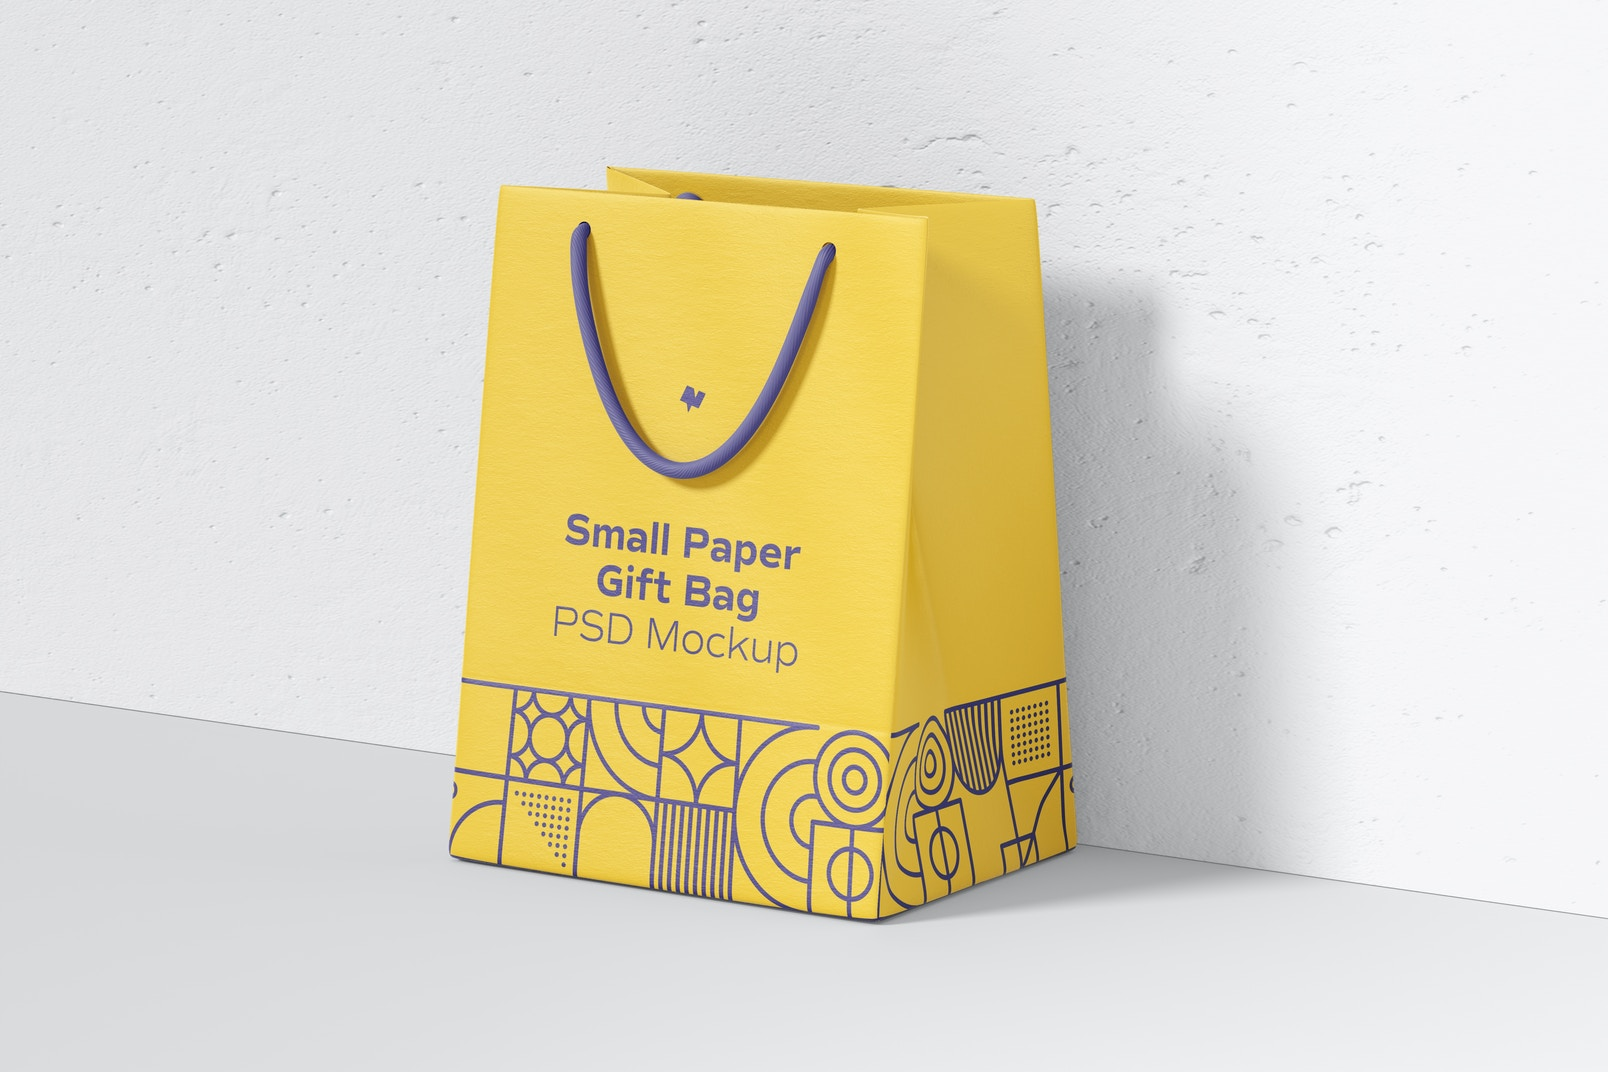 Small Paper Gift Bag With Rope Handle Mockup, Perspective